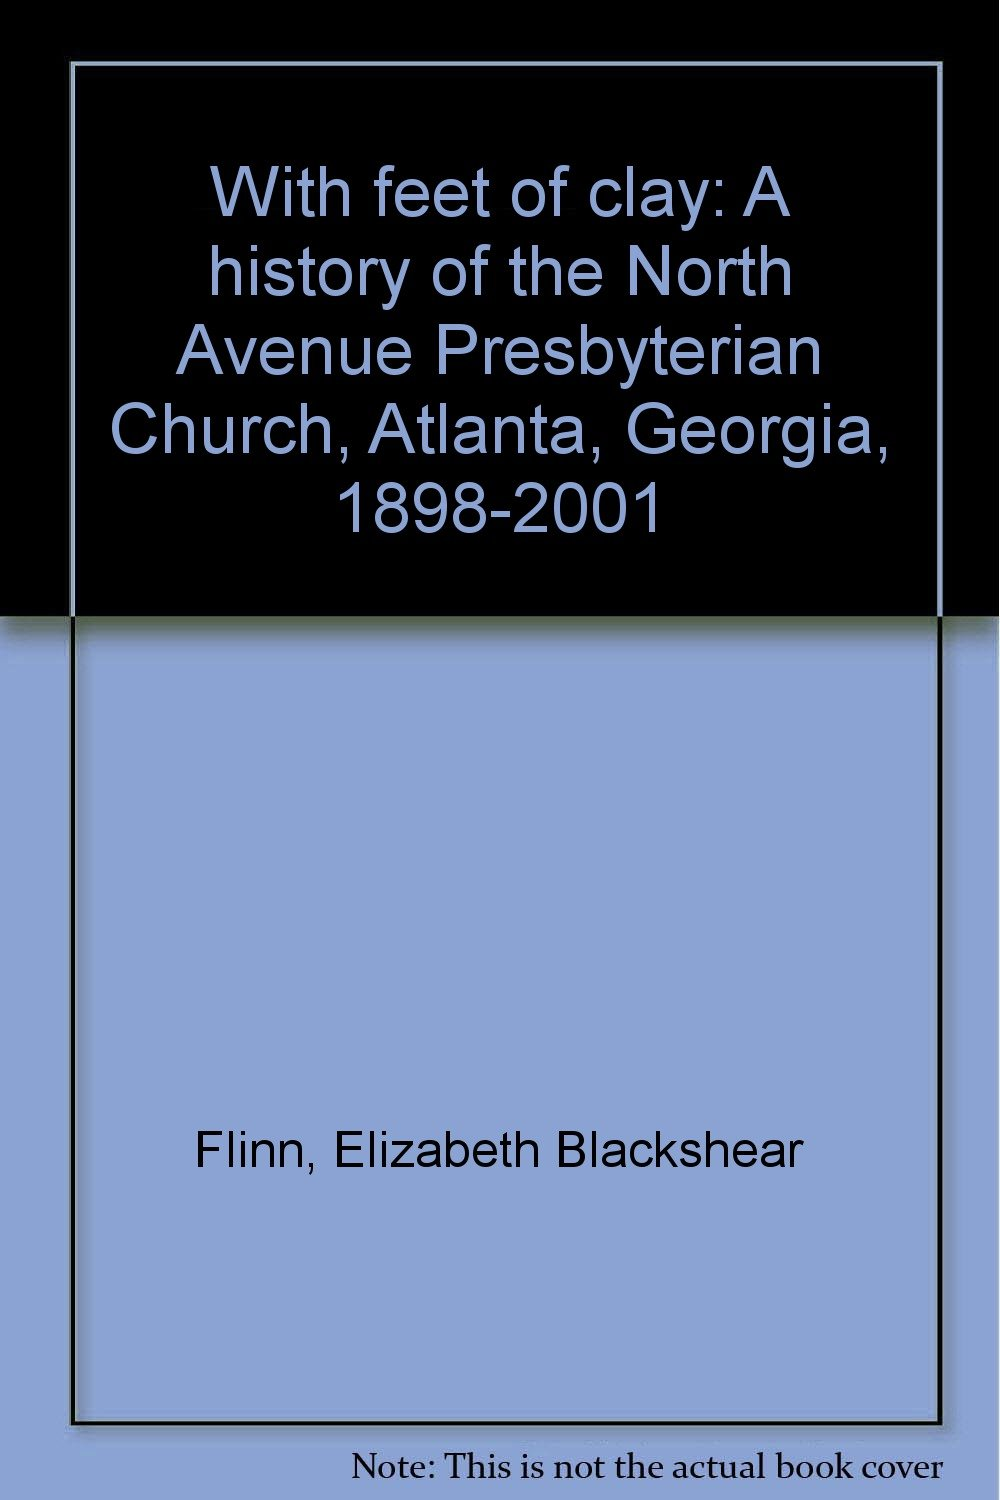 Download With feet of clay: A history of the North Avenue Presbyterian Church, Atlanta, Georgia, 1898-2001 pdf